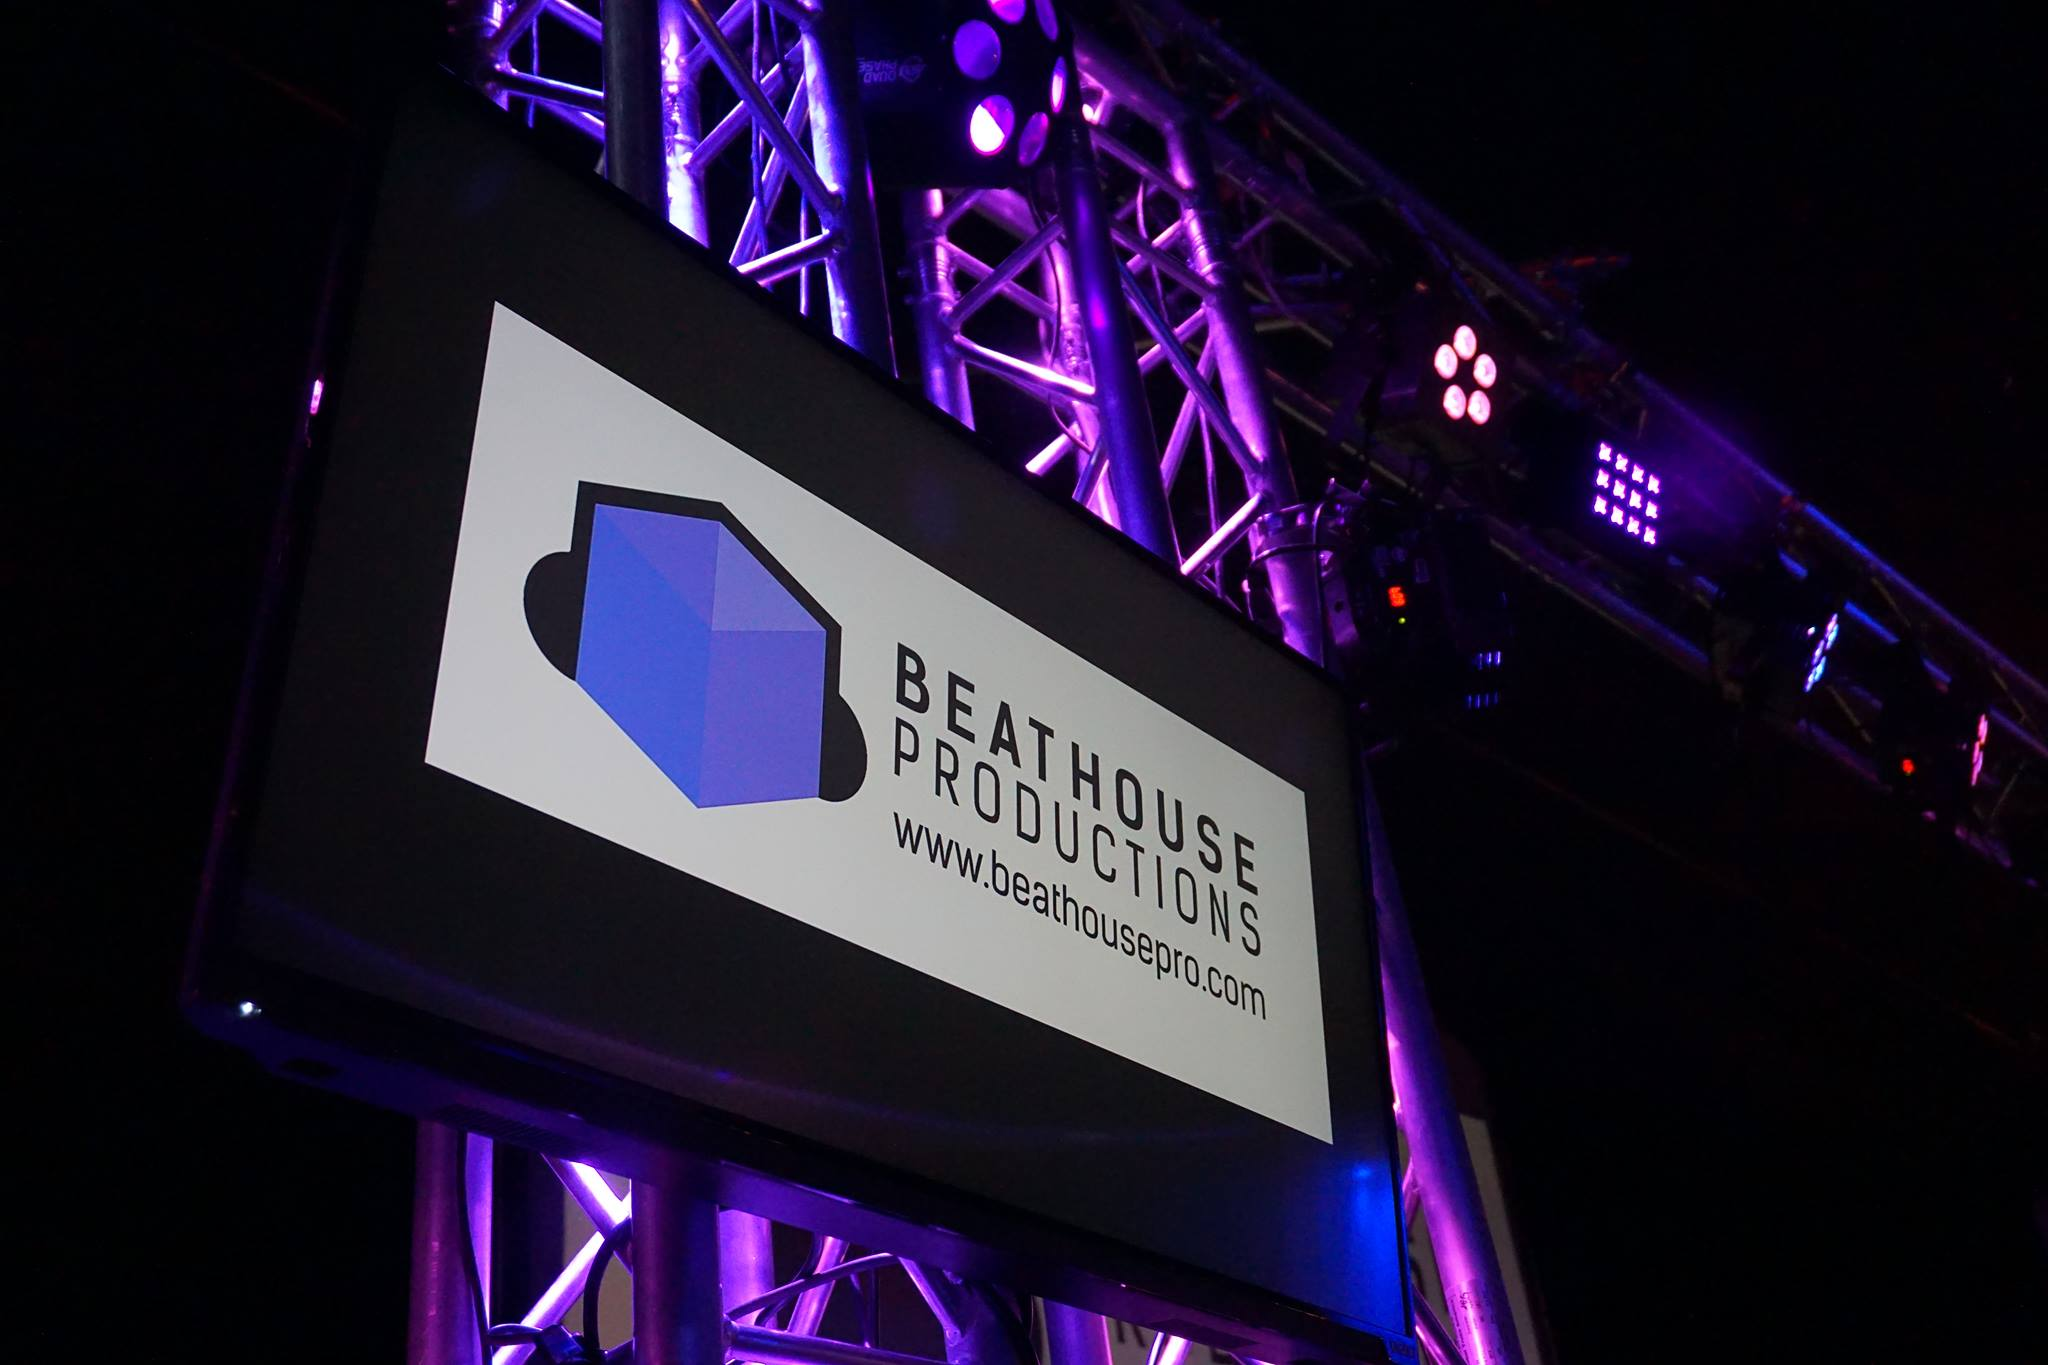 beat house productions